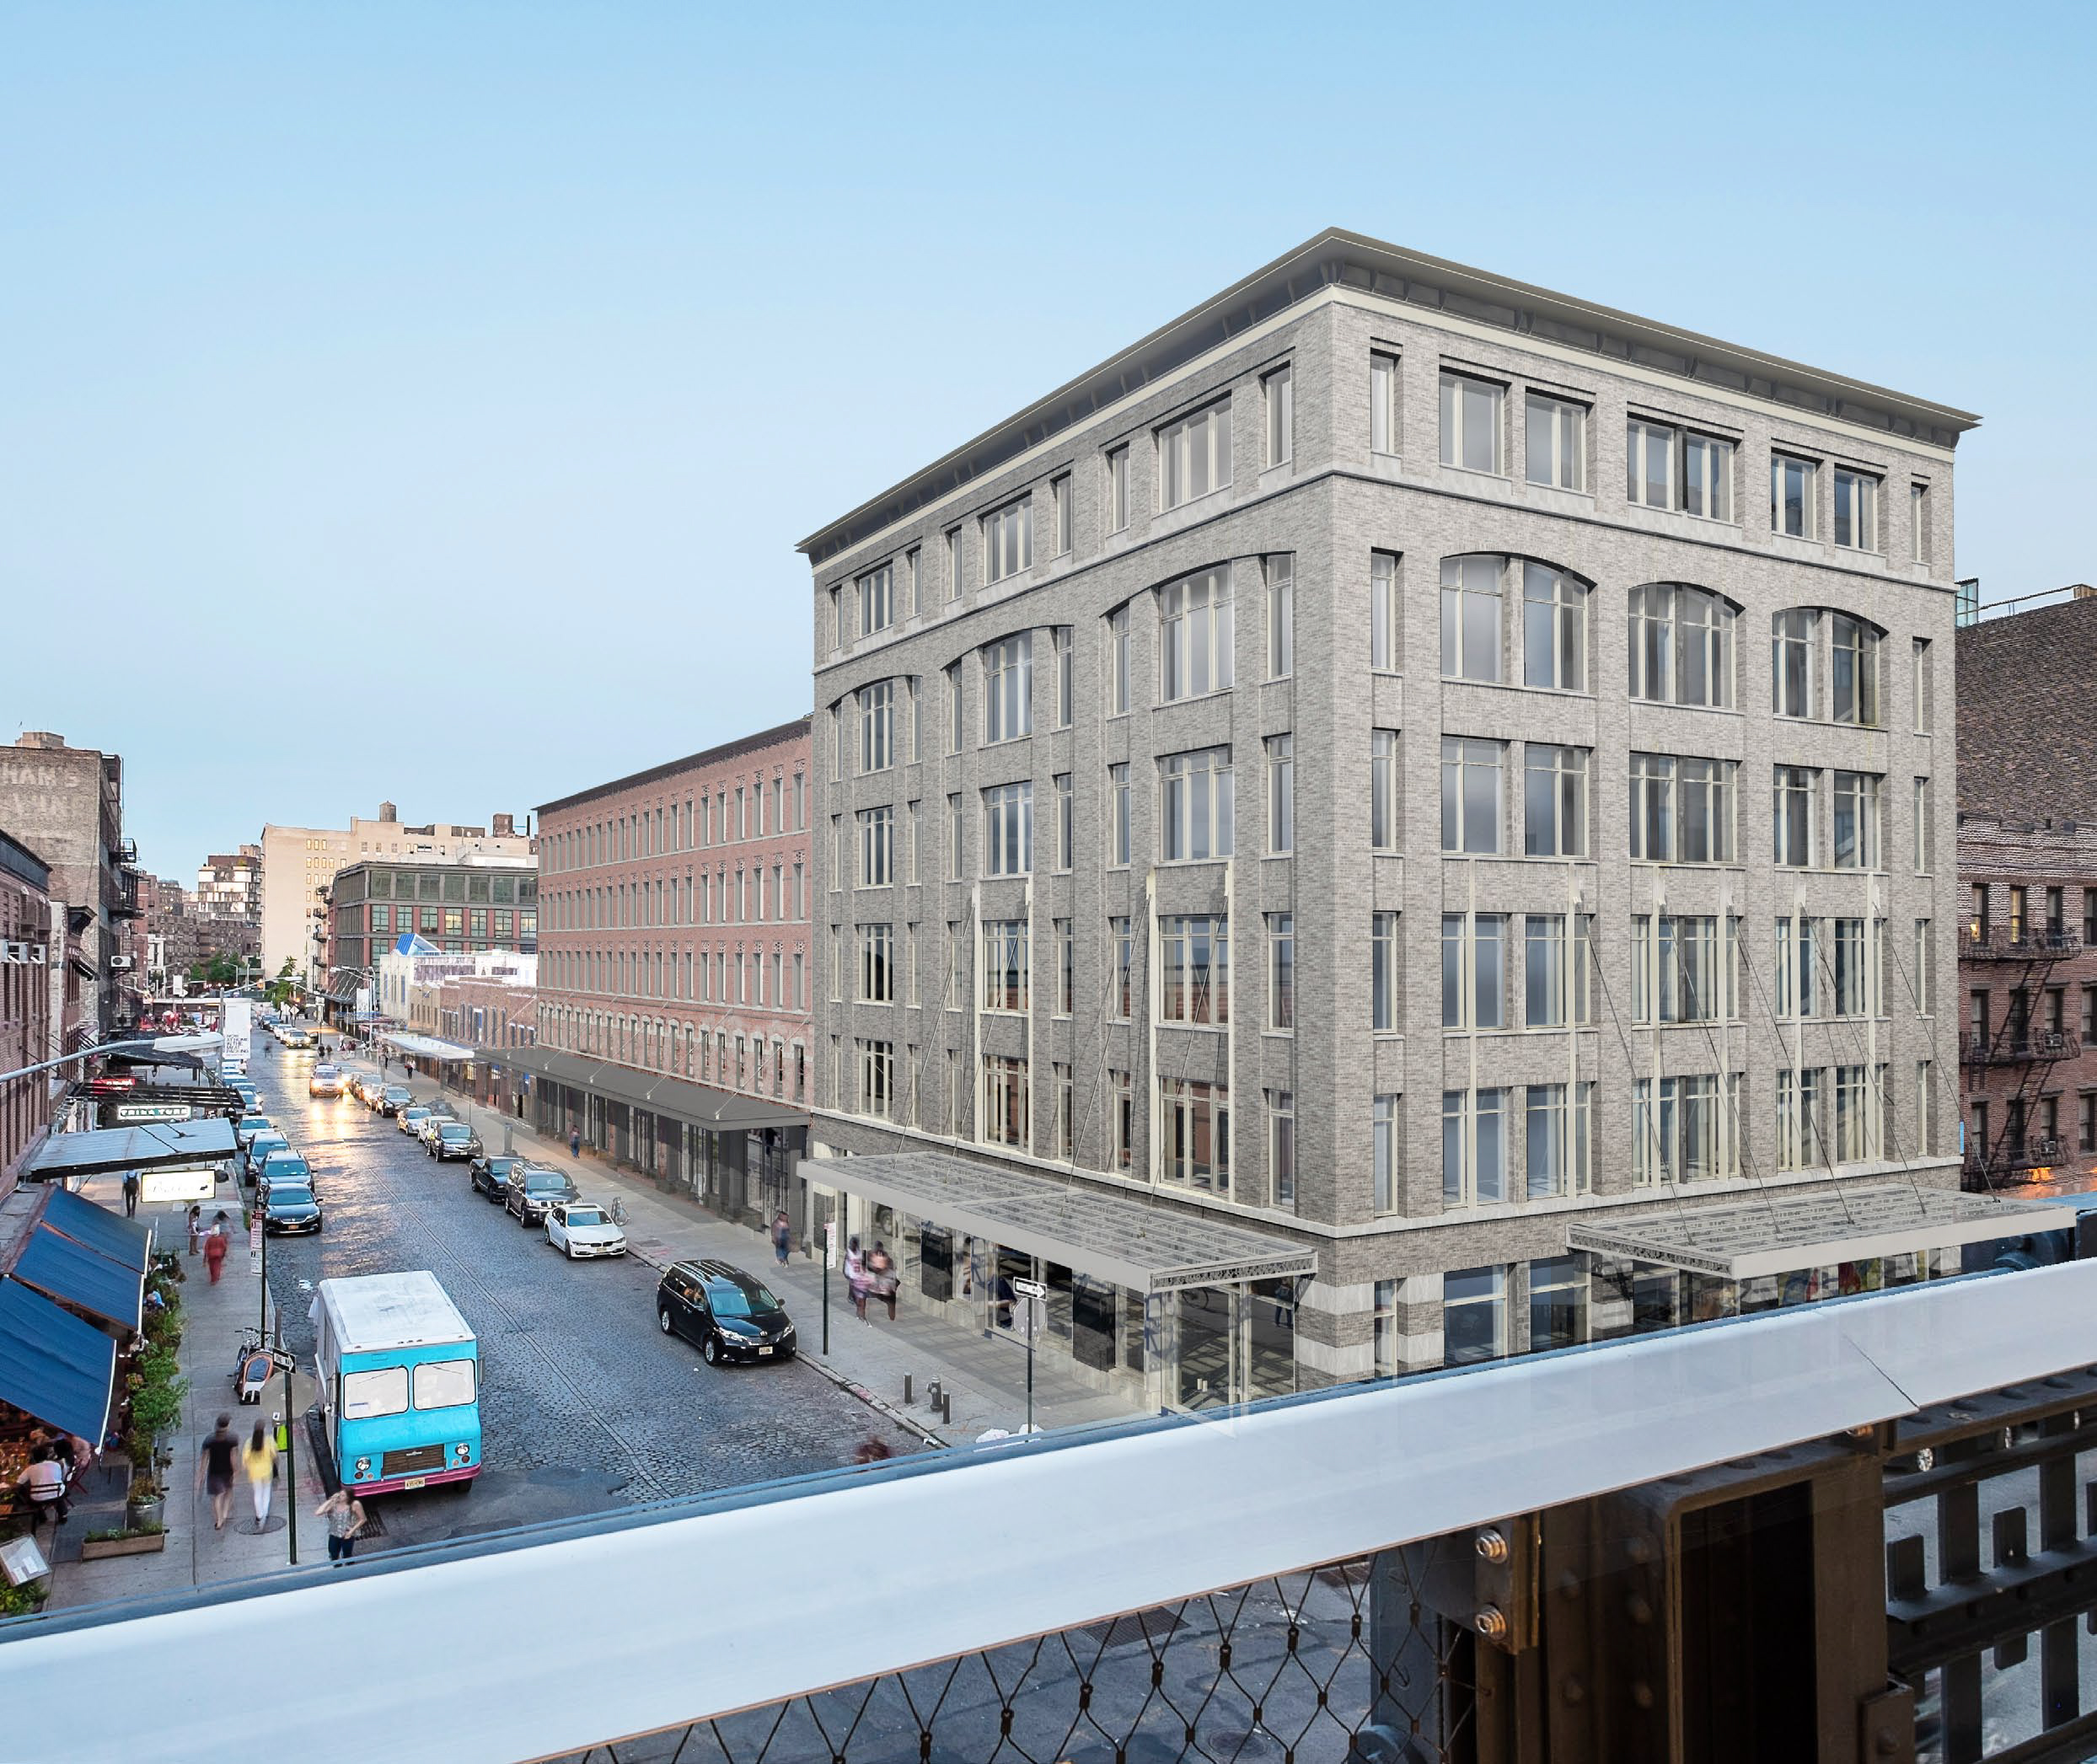 Gansevoort Market Plan meatpacking district new york - curbed ny